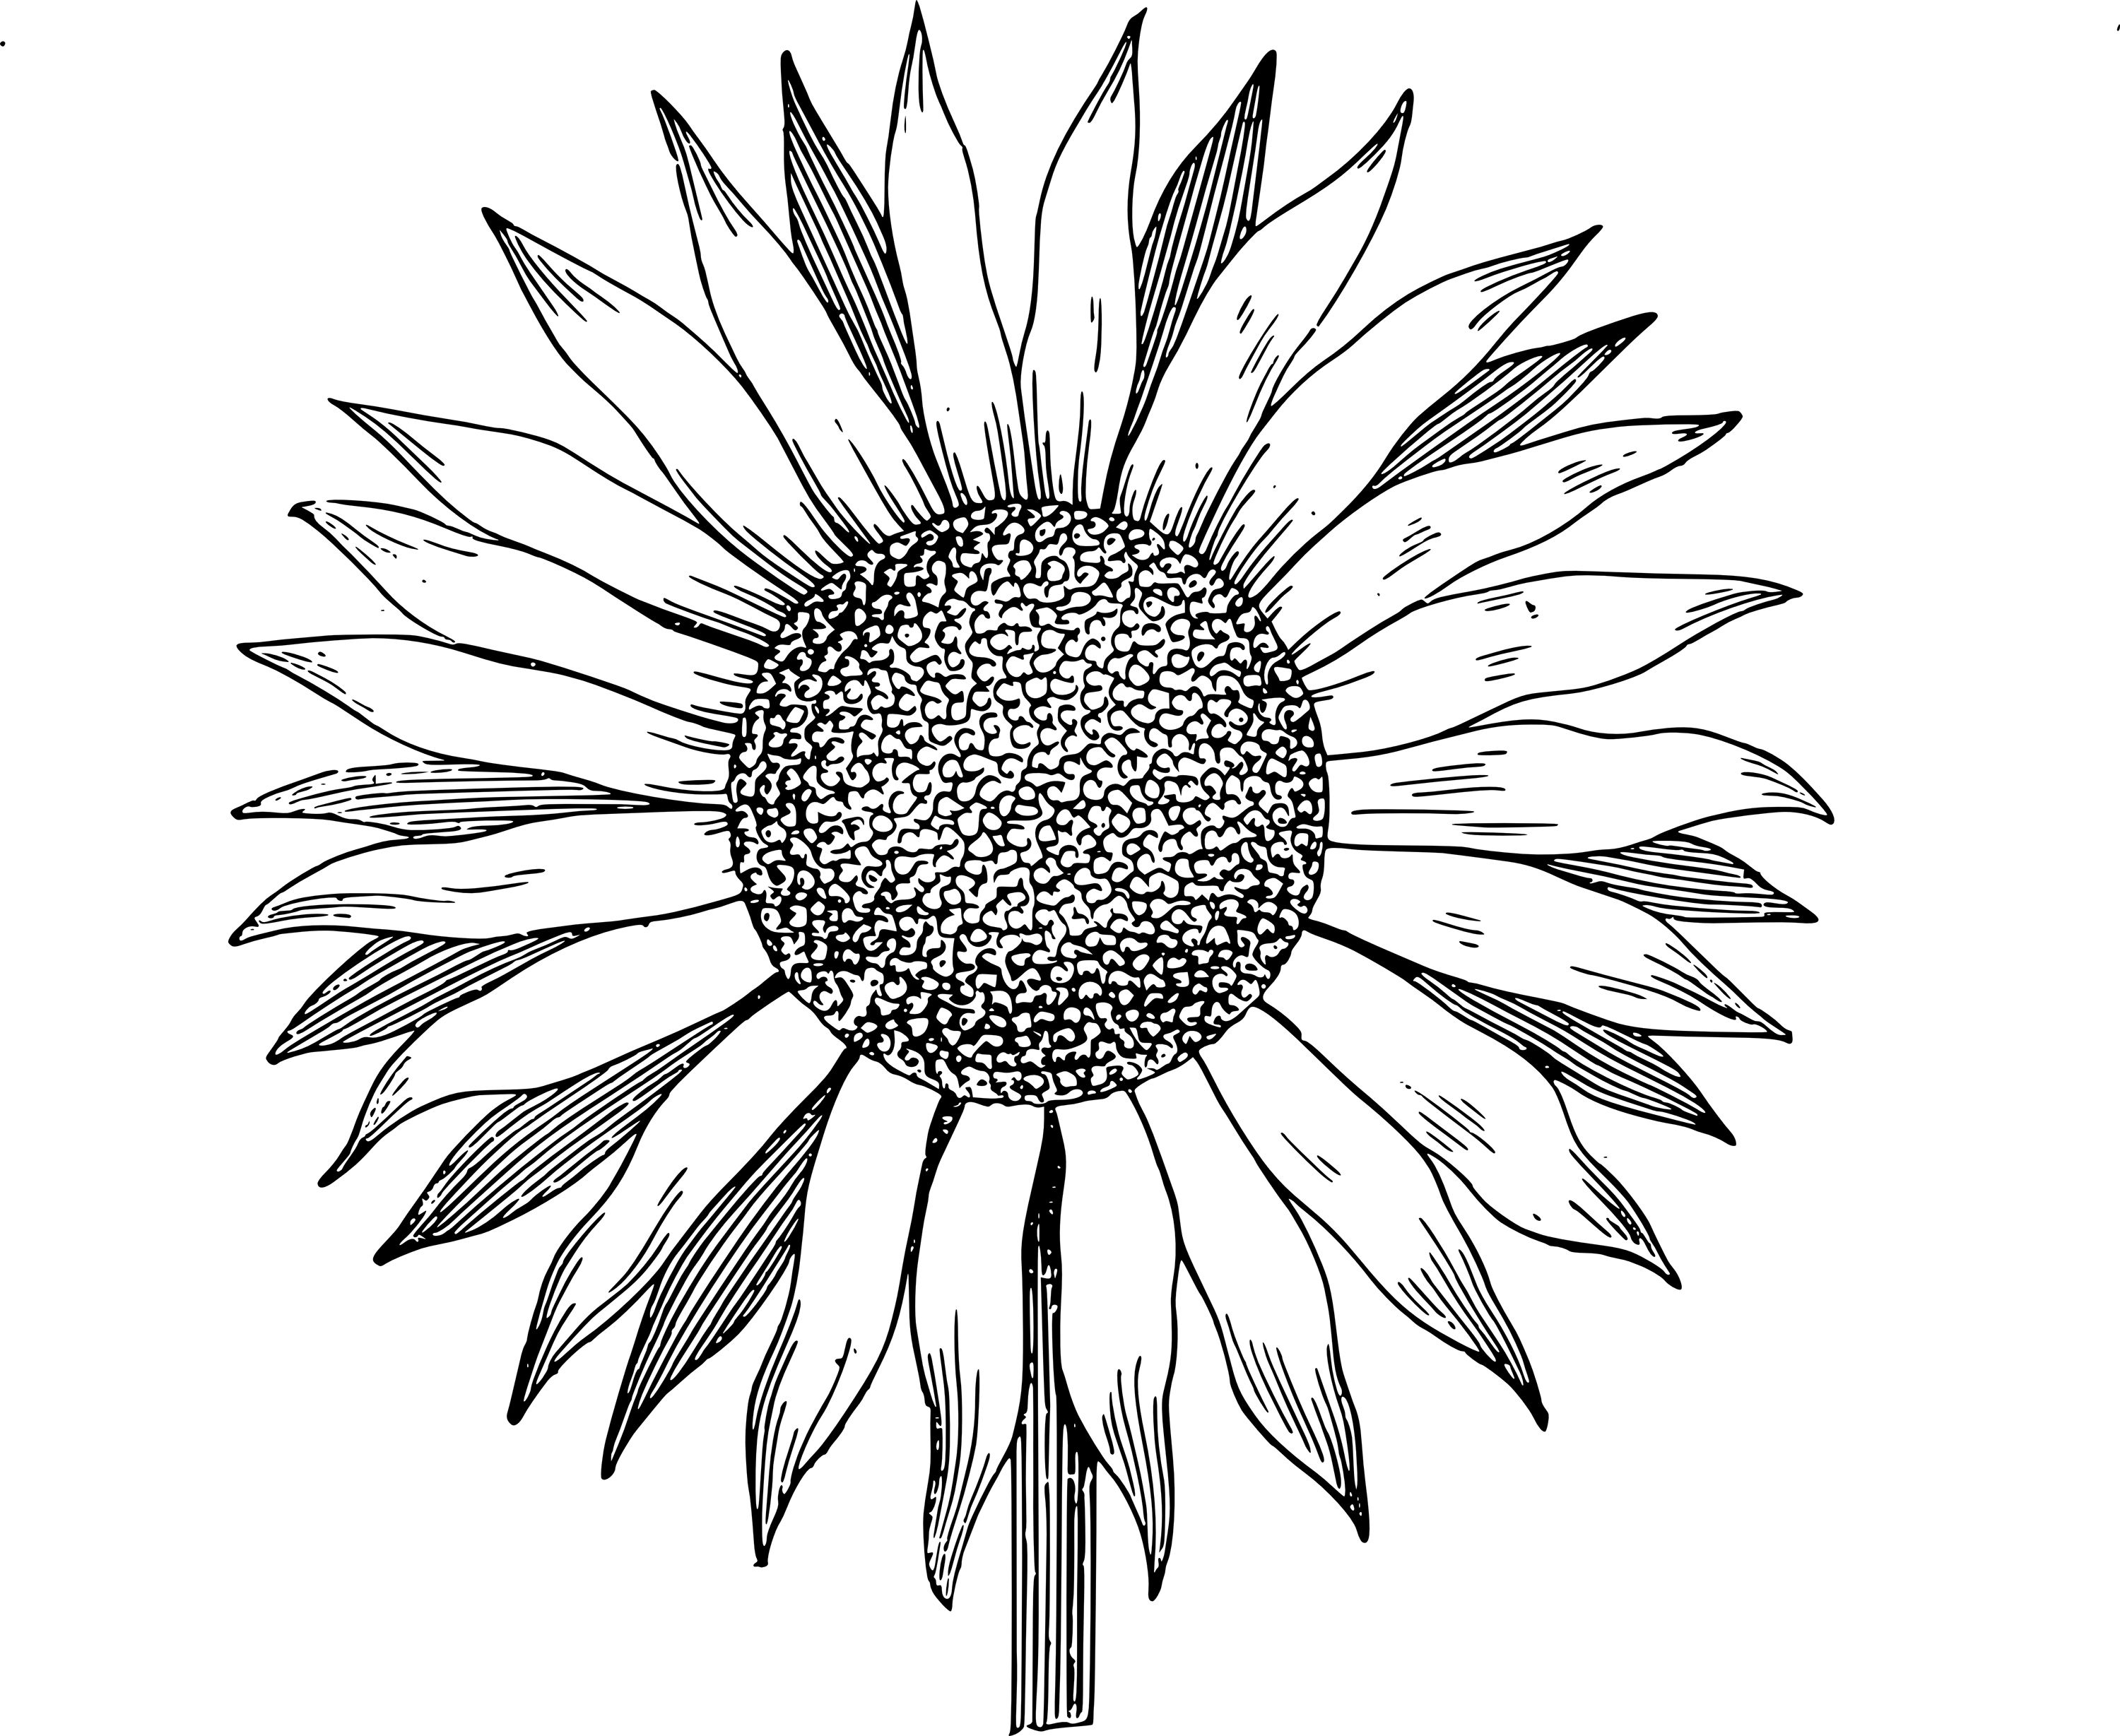 Free Clip Art Sunflower Vector Image Clip Art Department | s and s ... for Clipart Sunflower Black And White  5lp5wja